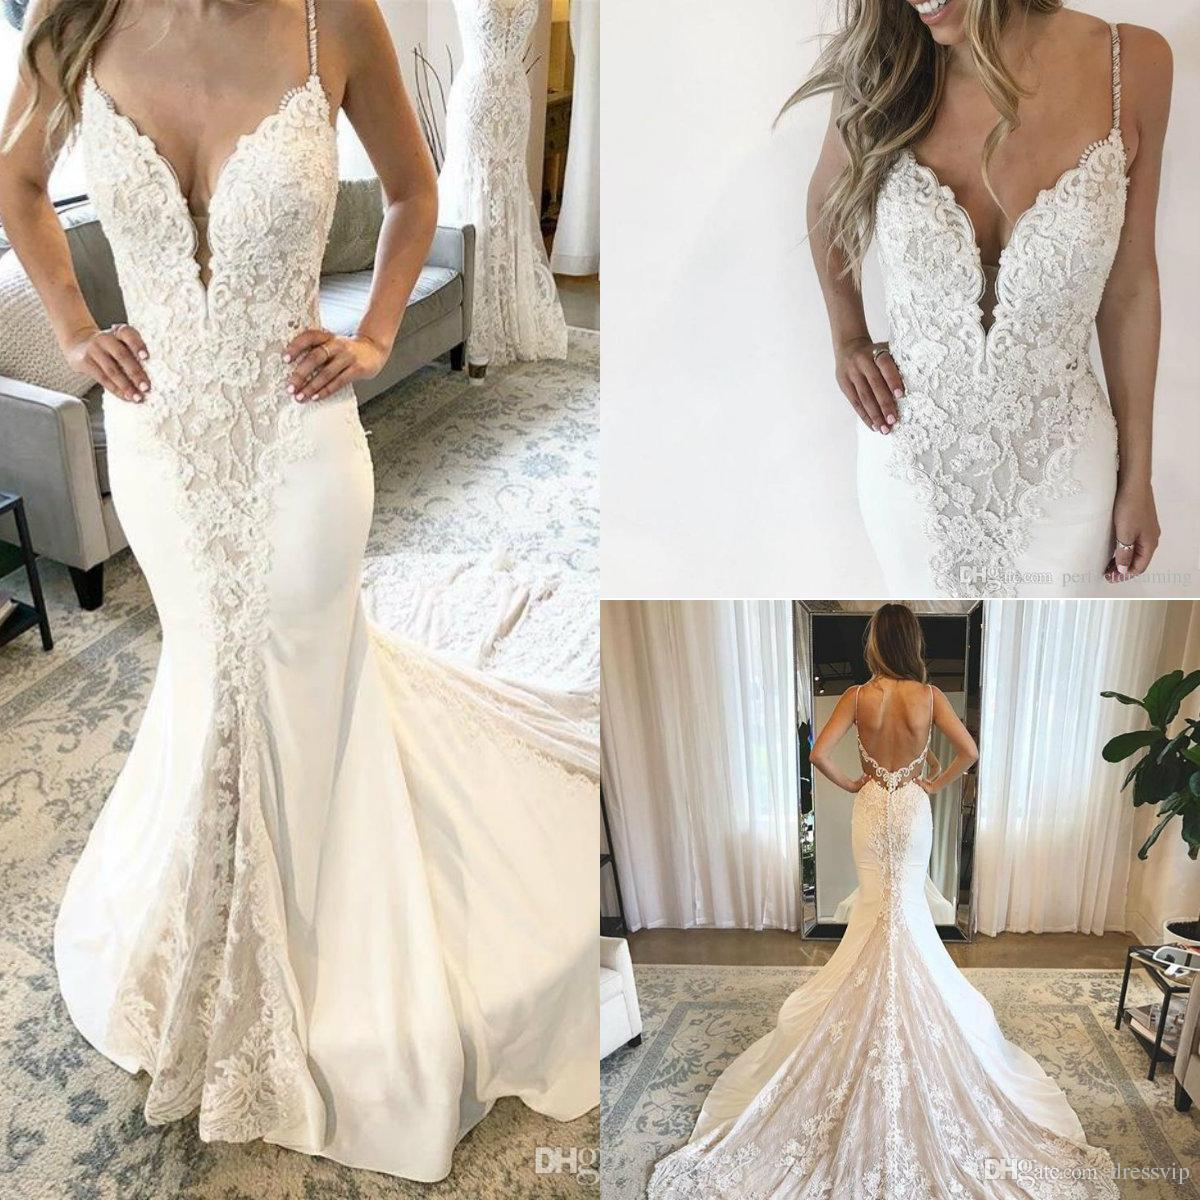 2019 Lace Mermaid Wedding Dresses Spaghetti Lace Appliqued Beaded Sweep Train Bohemian Wedding Dress Backless Plus Size Bridal Gowns